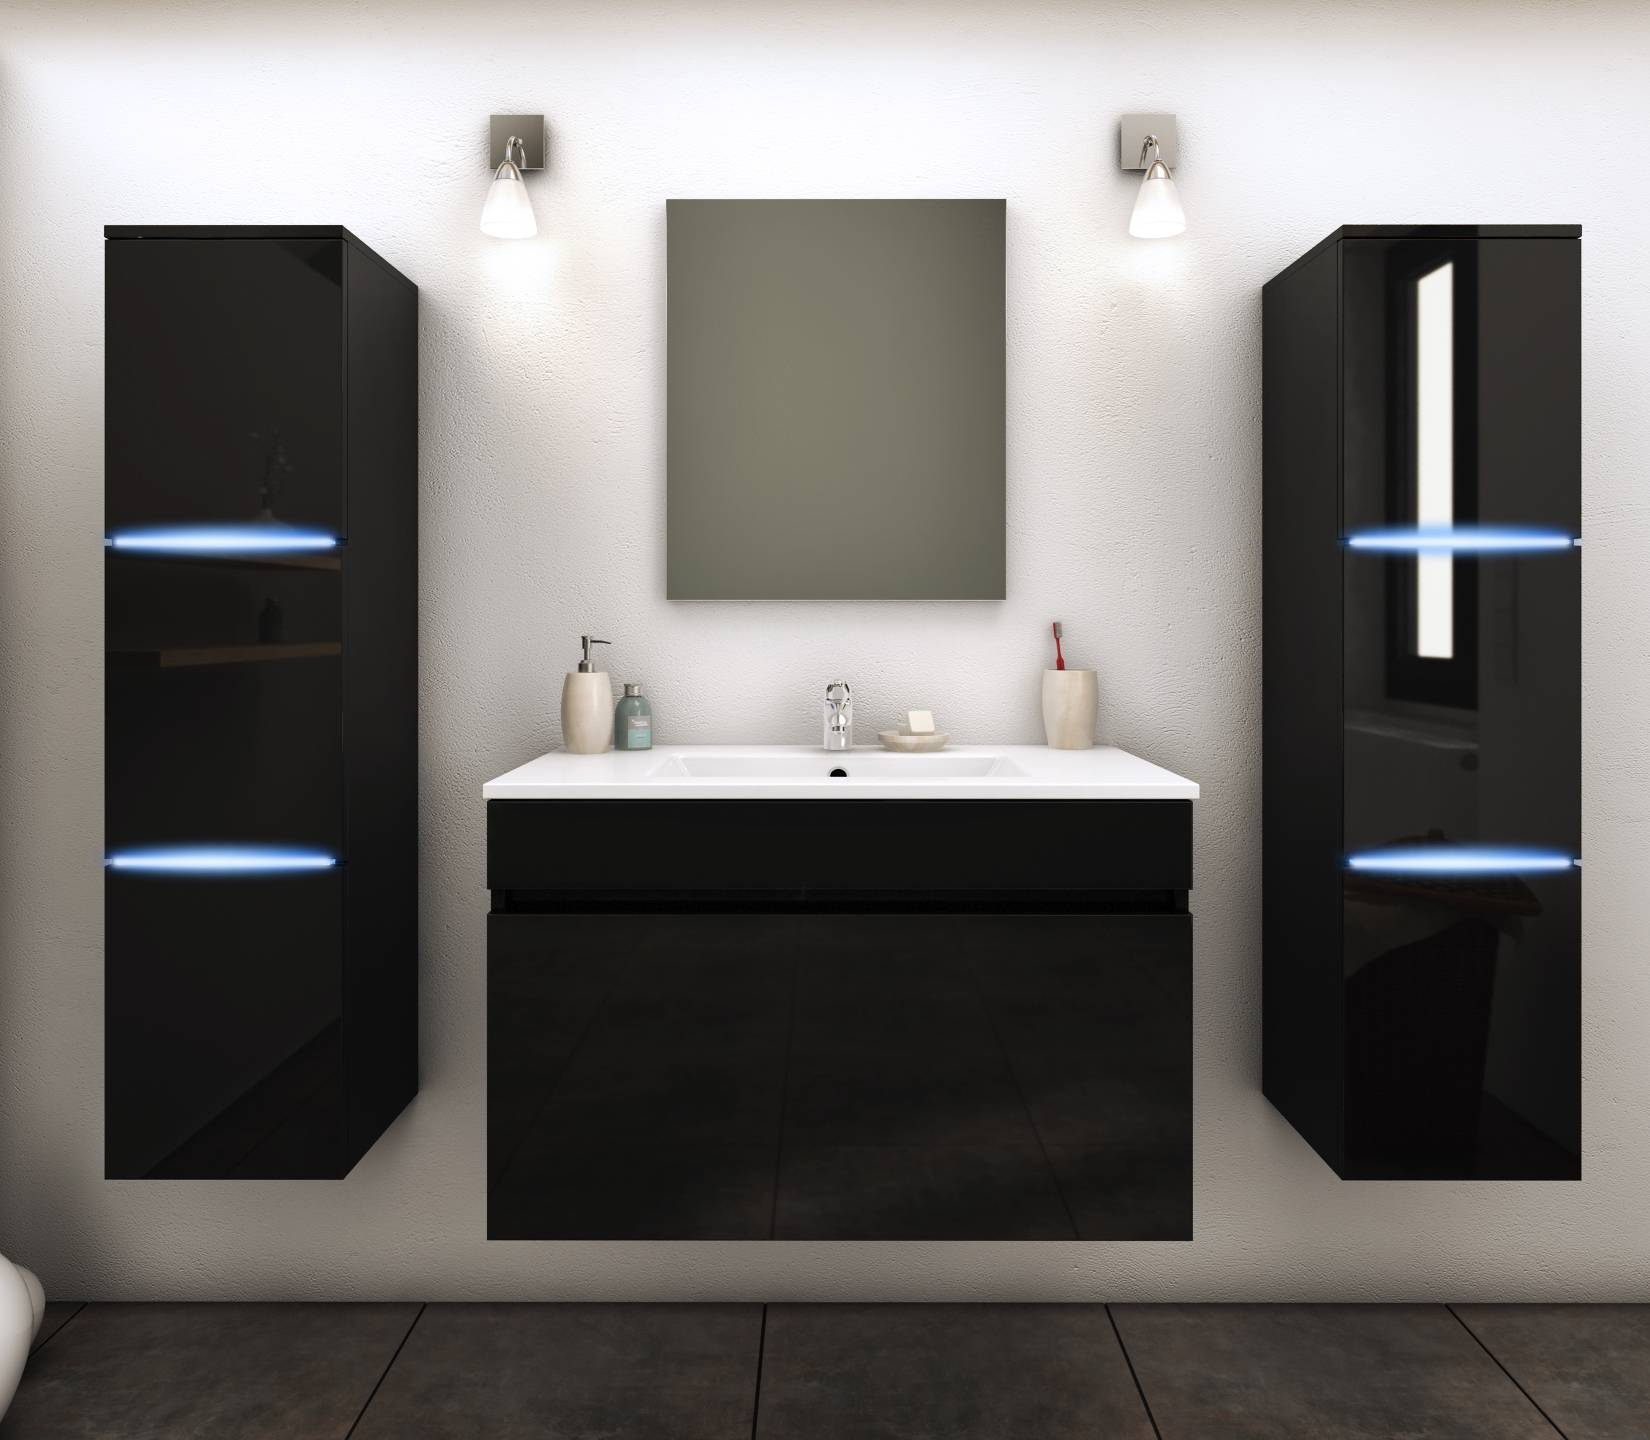 colonne murale salle de bain finest alatoire images de colonne salle de bain ikea meublesalle. Black Bedroom Furniture Sets. Home Design Ideas